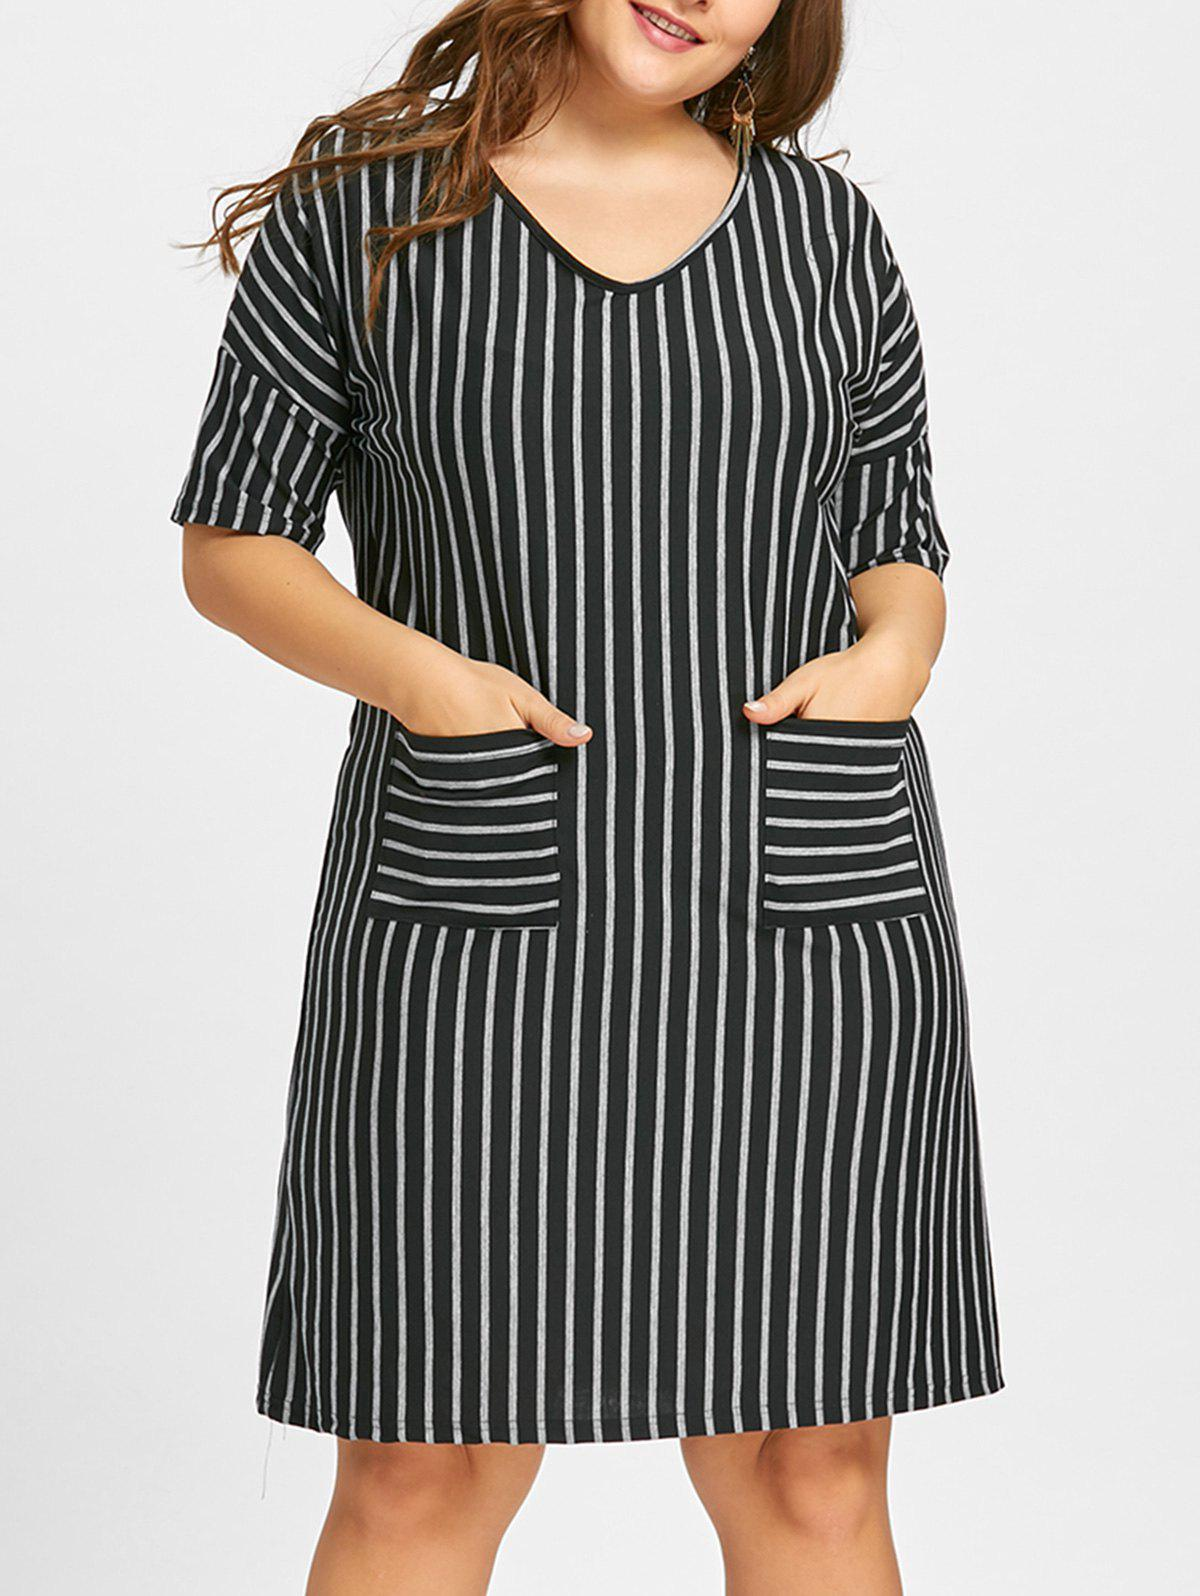 Find plus size dresses in black, white, red, blue, and more. Our plus size dresses will make you the best-dressed woman in the room. why shop city chic. Global Curves City Chic is an internationally recognised brand with over global locations. Endless Selection With new stock arriving weekly, you'll always be able to find the perfect outfit.